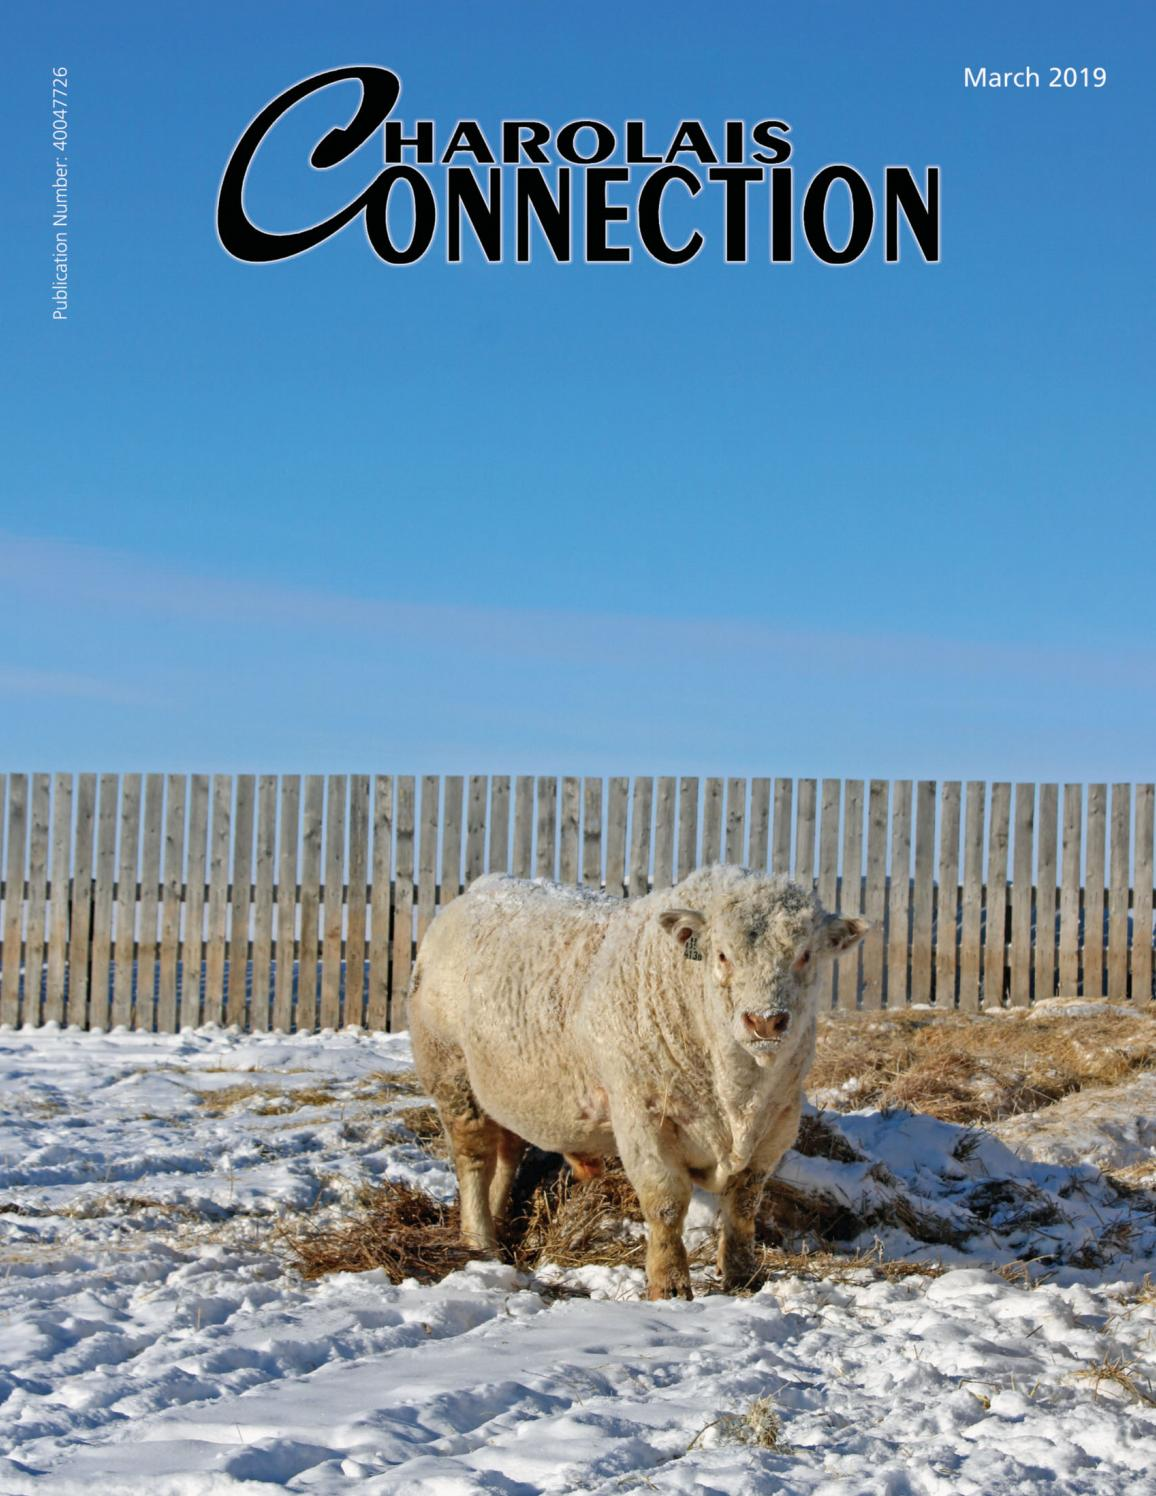 march 2019 Charolais Connection by Charolais Banner - issuu